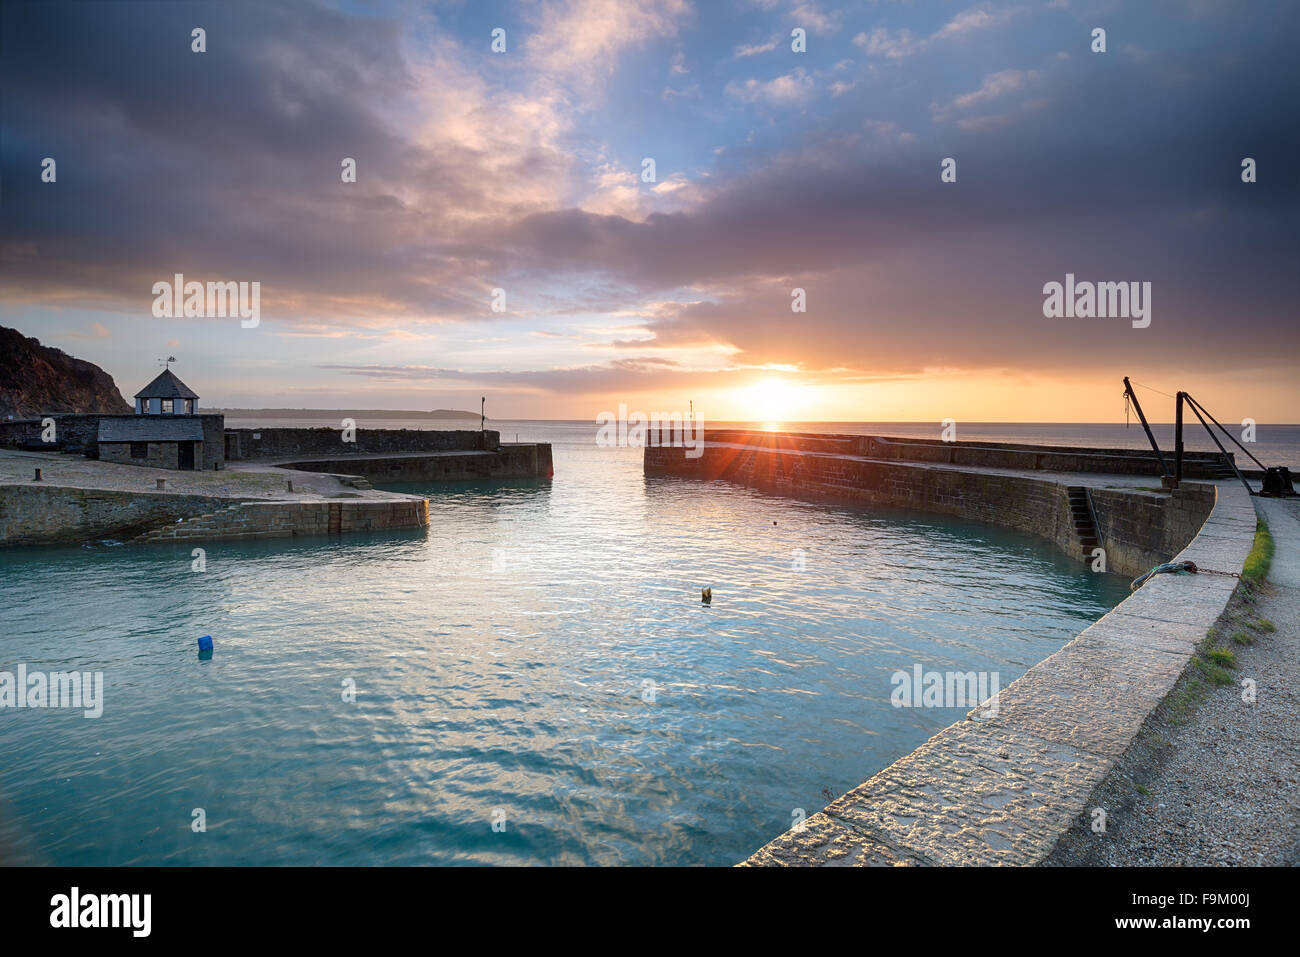 Sunrise at Charlestown an historic fishing port near St Austell in Cornwall - Stock Image